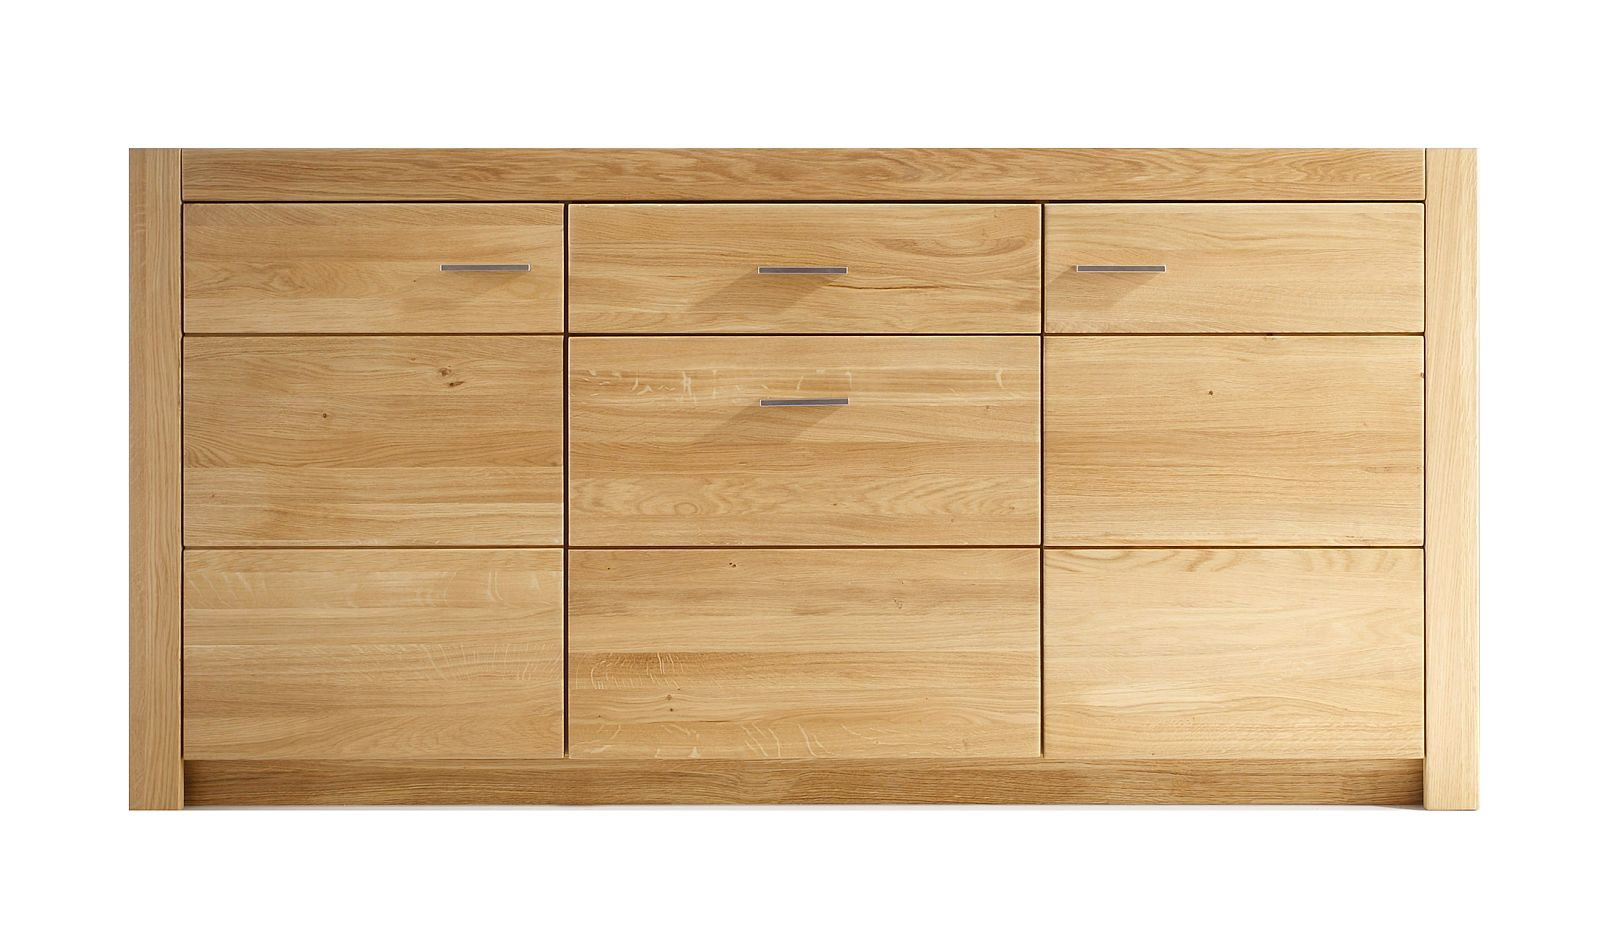 Küchentheken Stühle Landhausstil Kommoden, Sideboards, Highboards | Eh-möbel